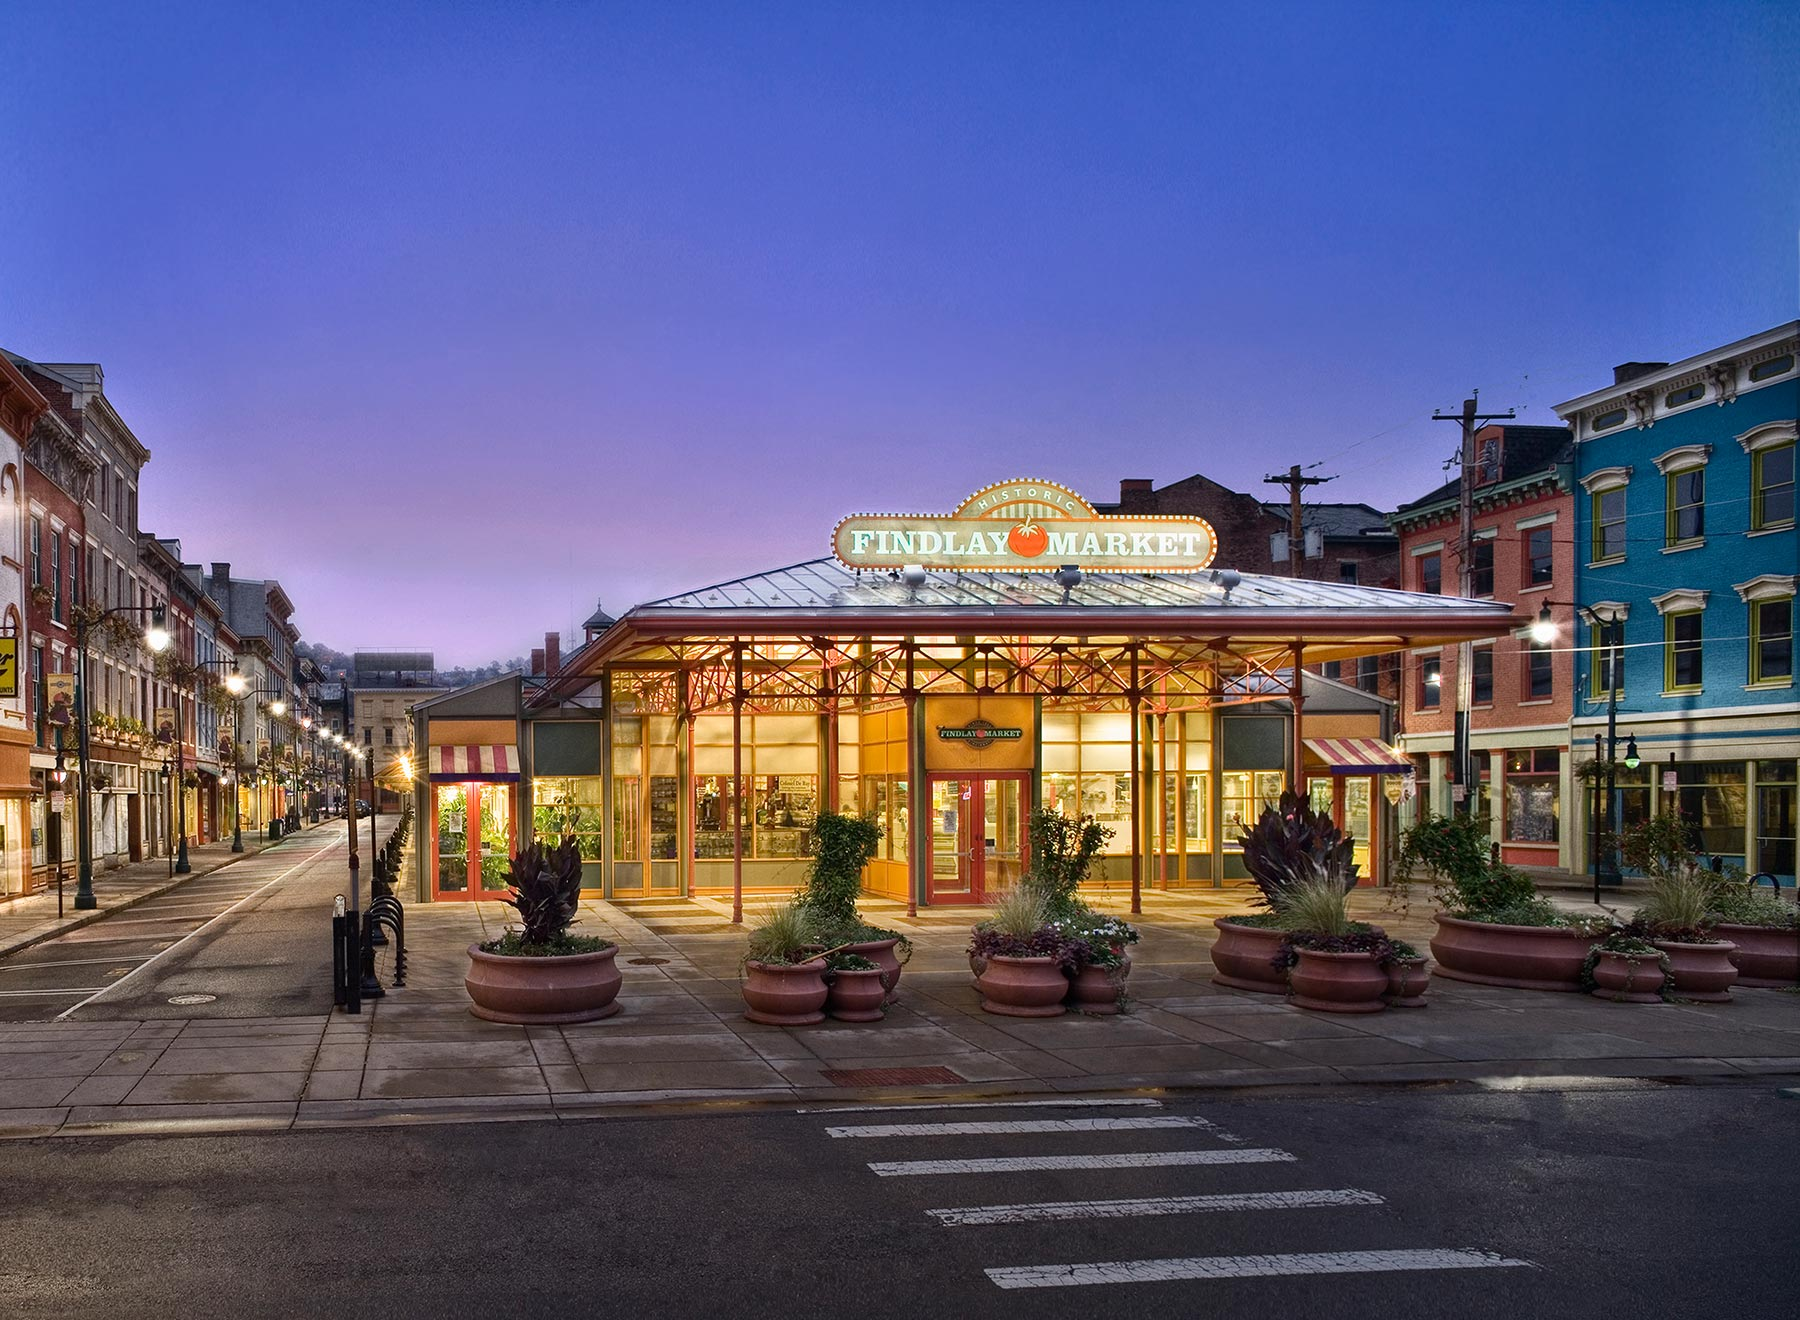 Cincinnati Findlay Market Urban City Architectural Photography